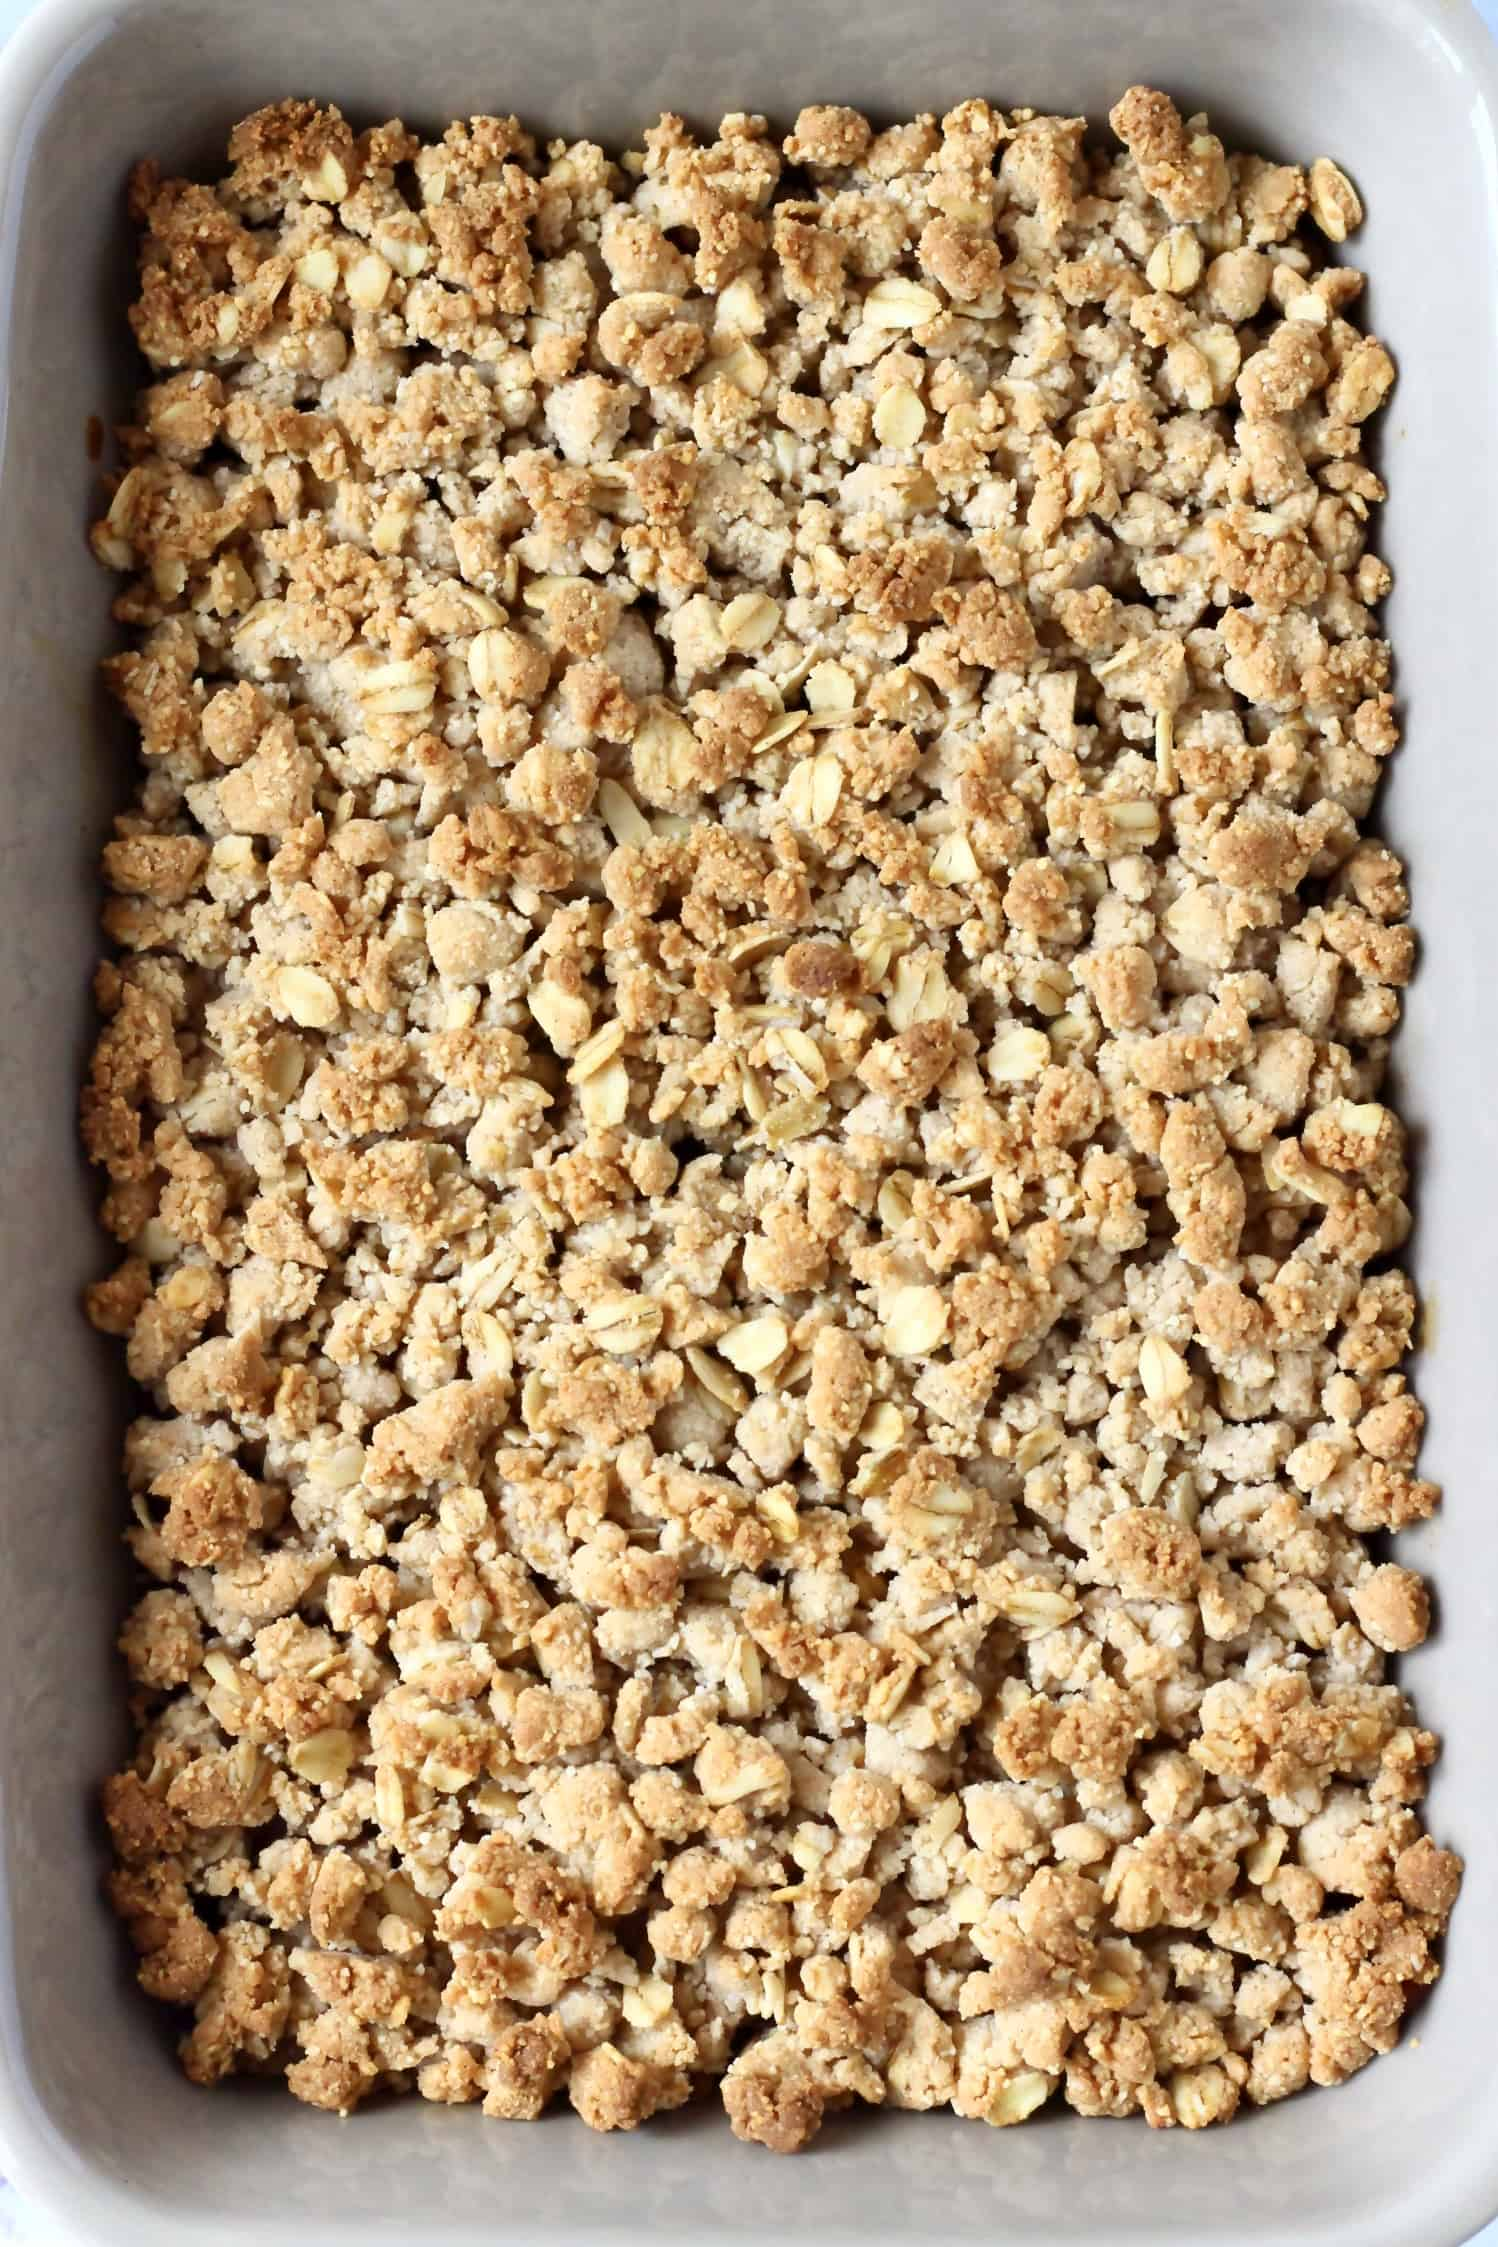 Golden brown gluten-free vegan apple crumble in a rectangular baking dish